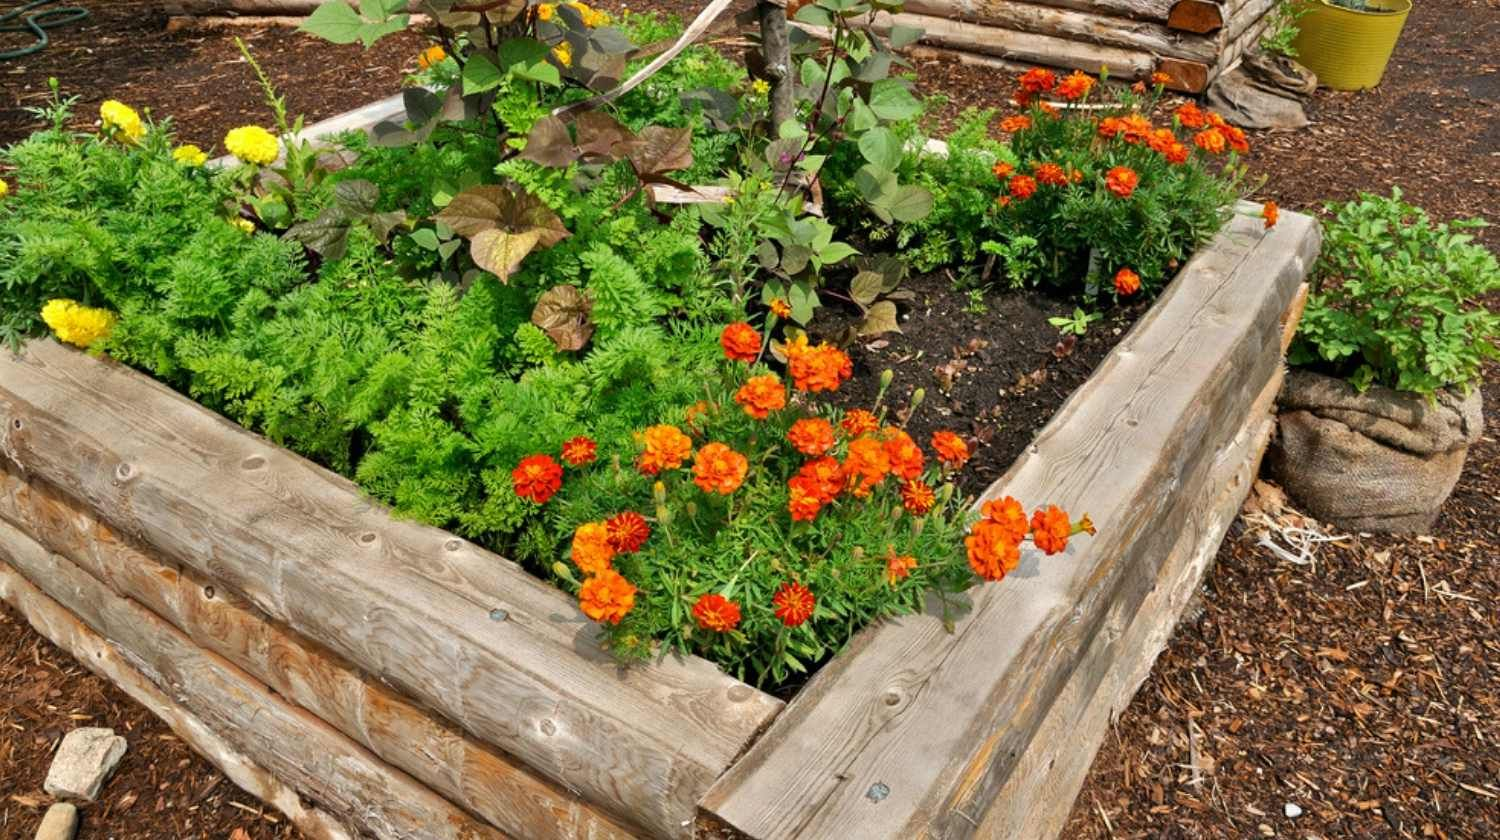 How to Build a Raised Flower Bed Garden | Garden beds ...